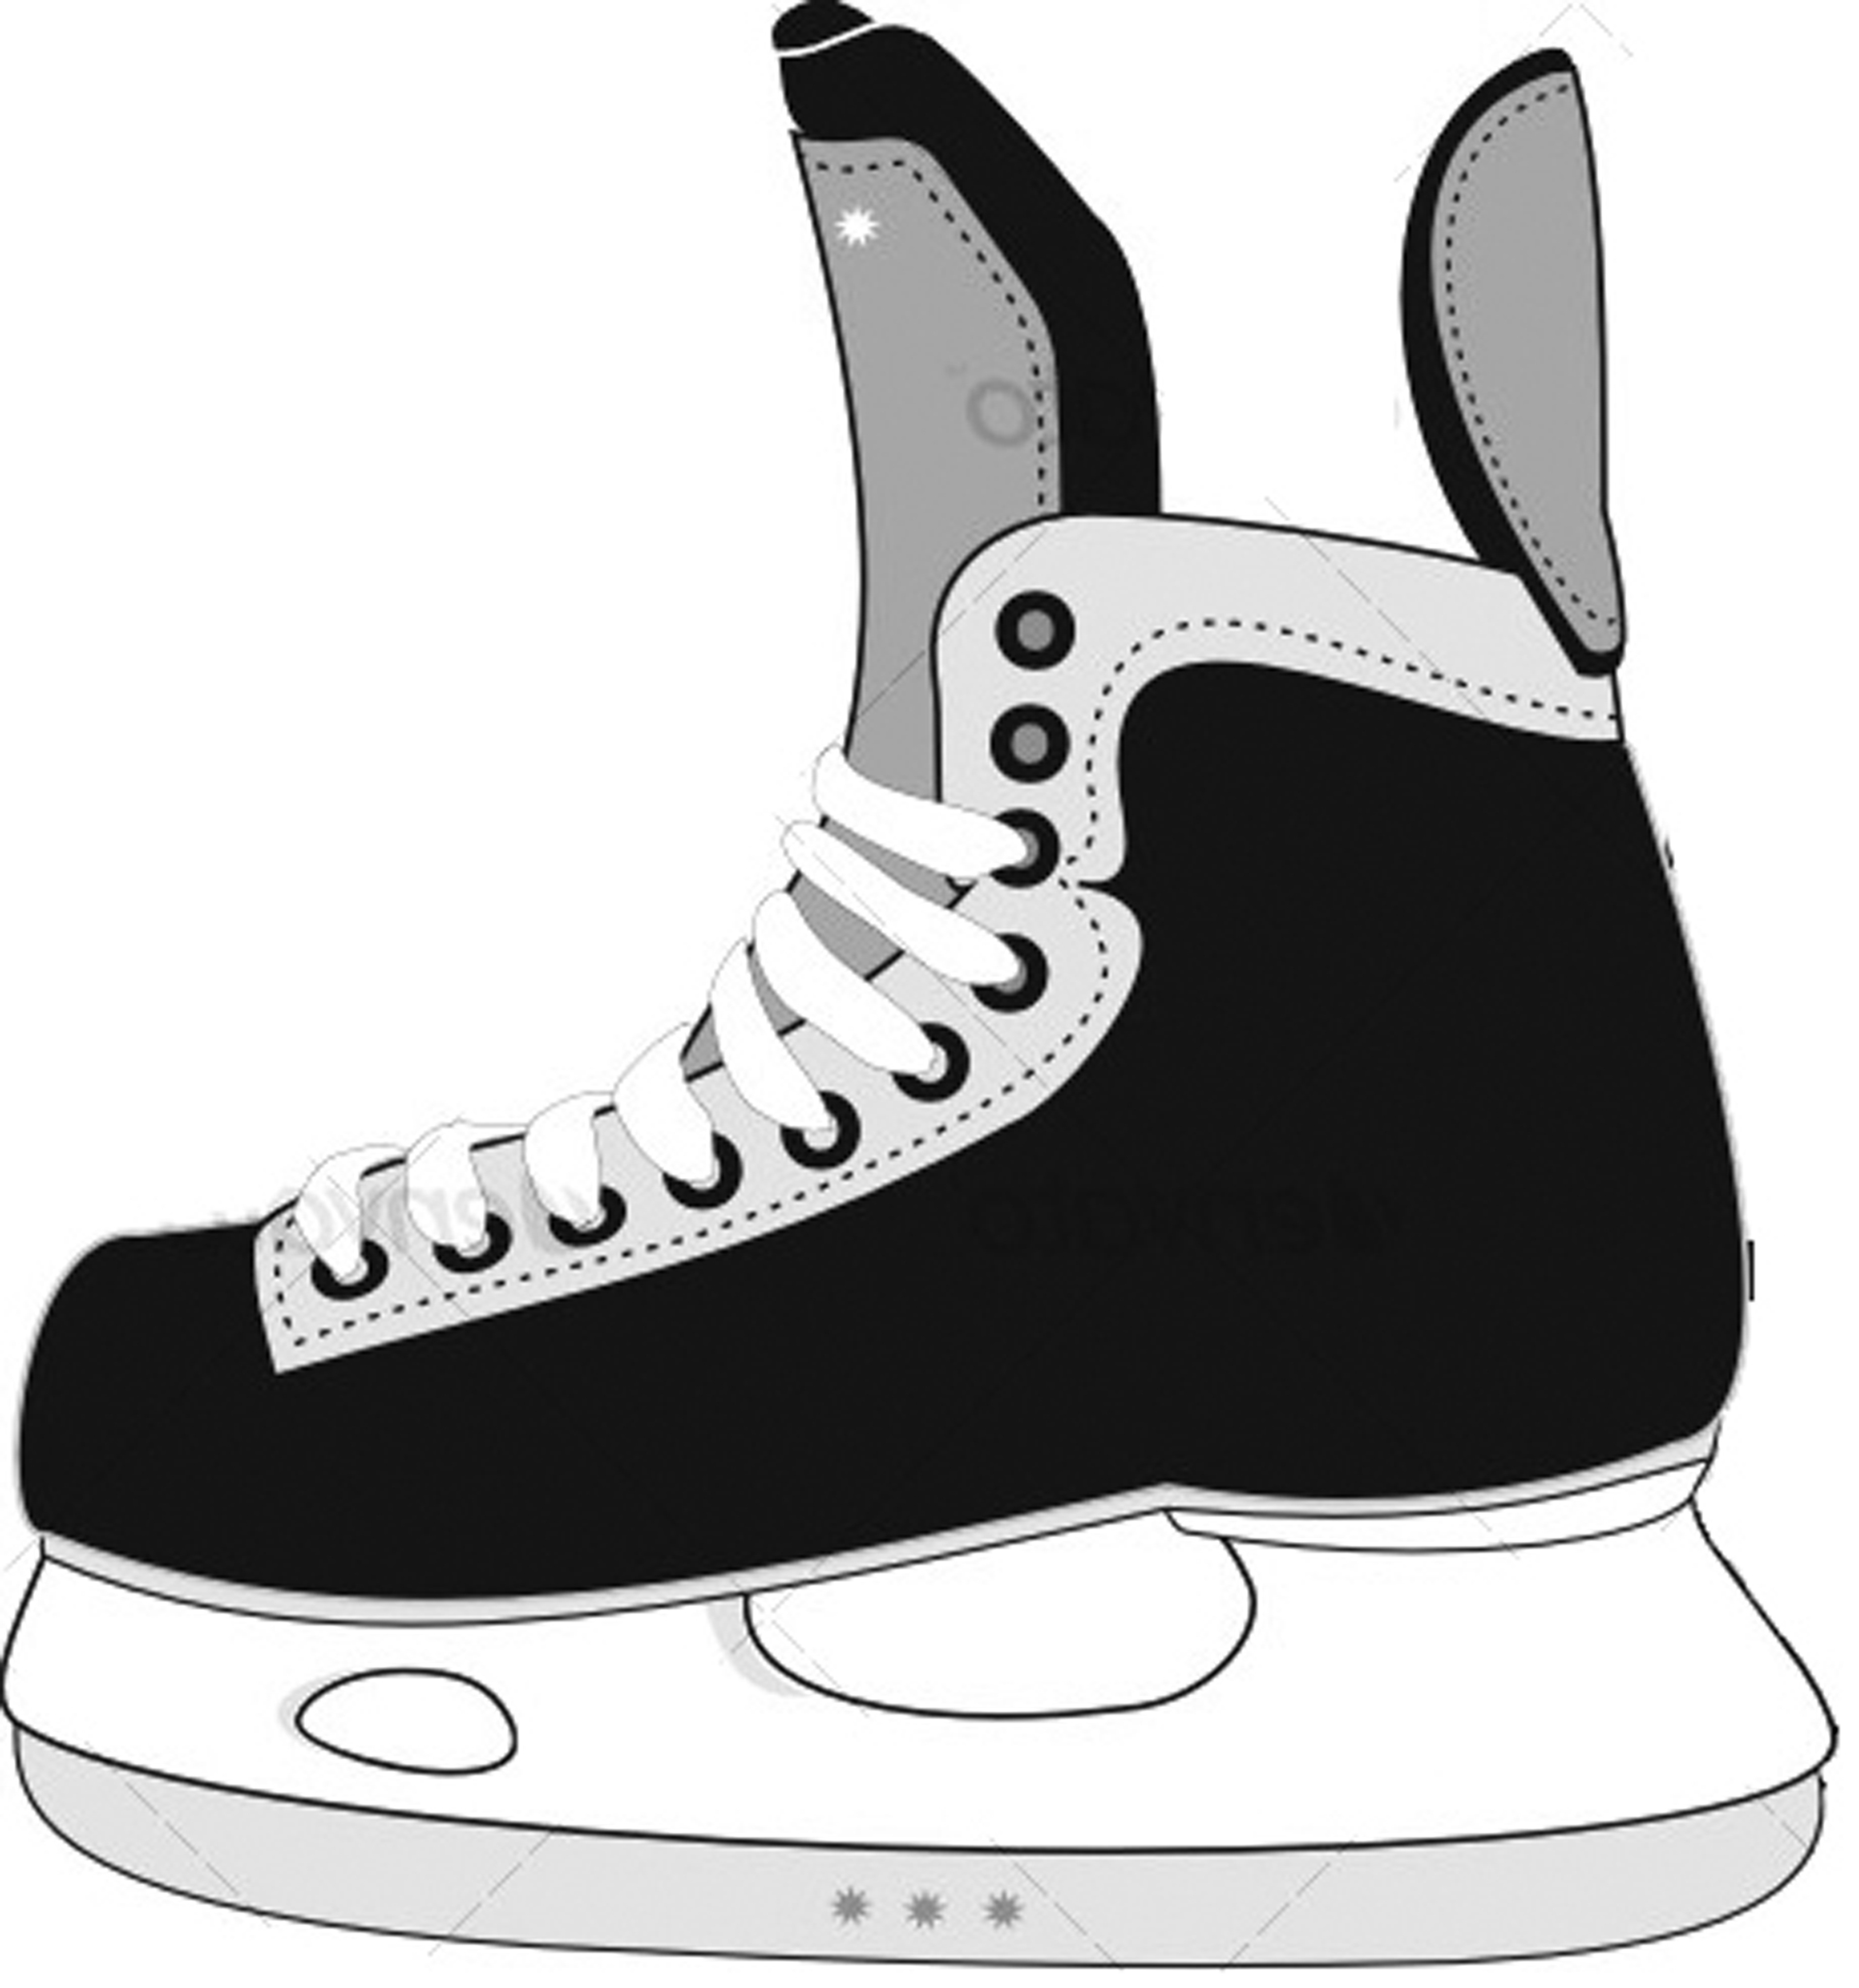 Displaying 20 Images For Cartoon Hockey -Displaying 20 Images For Cartoon Hockey Skates-1